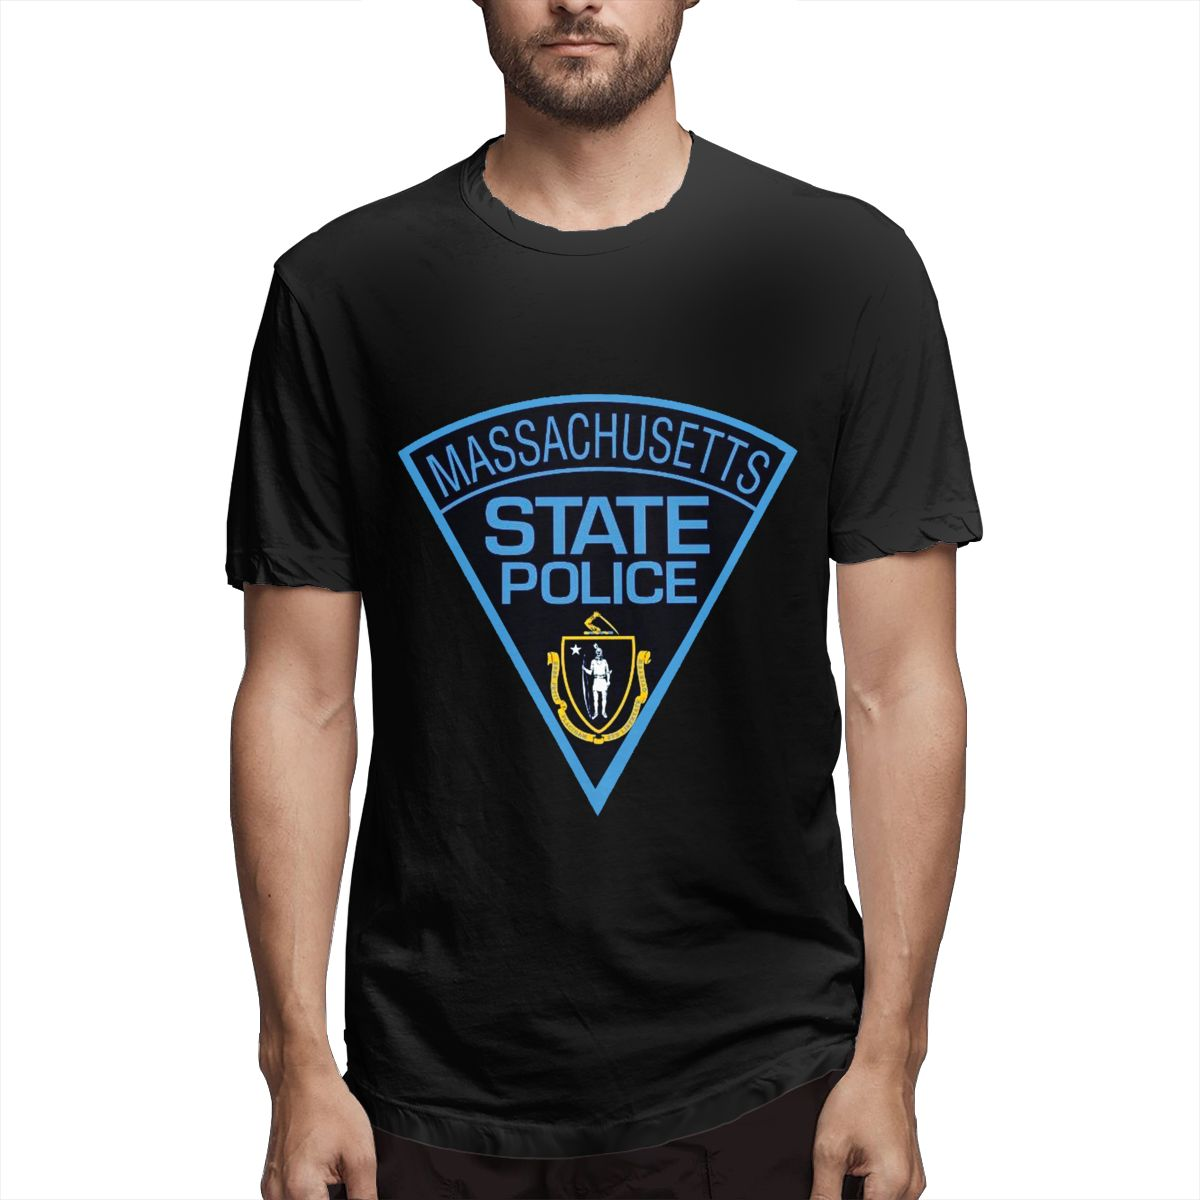 Print T Shirt <font><b>Massachusetts</b></font> State Police Women Men Funny Novelty T-shirt Short Sleeve Tops Unisex Outfit Clothing image